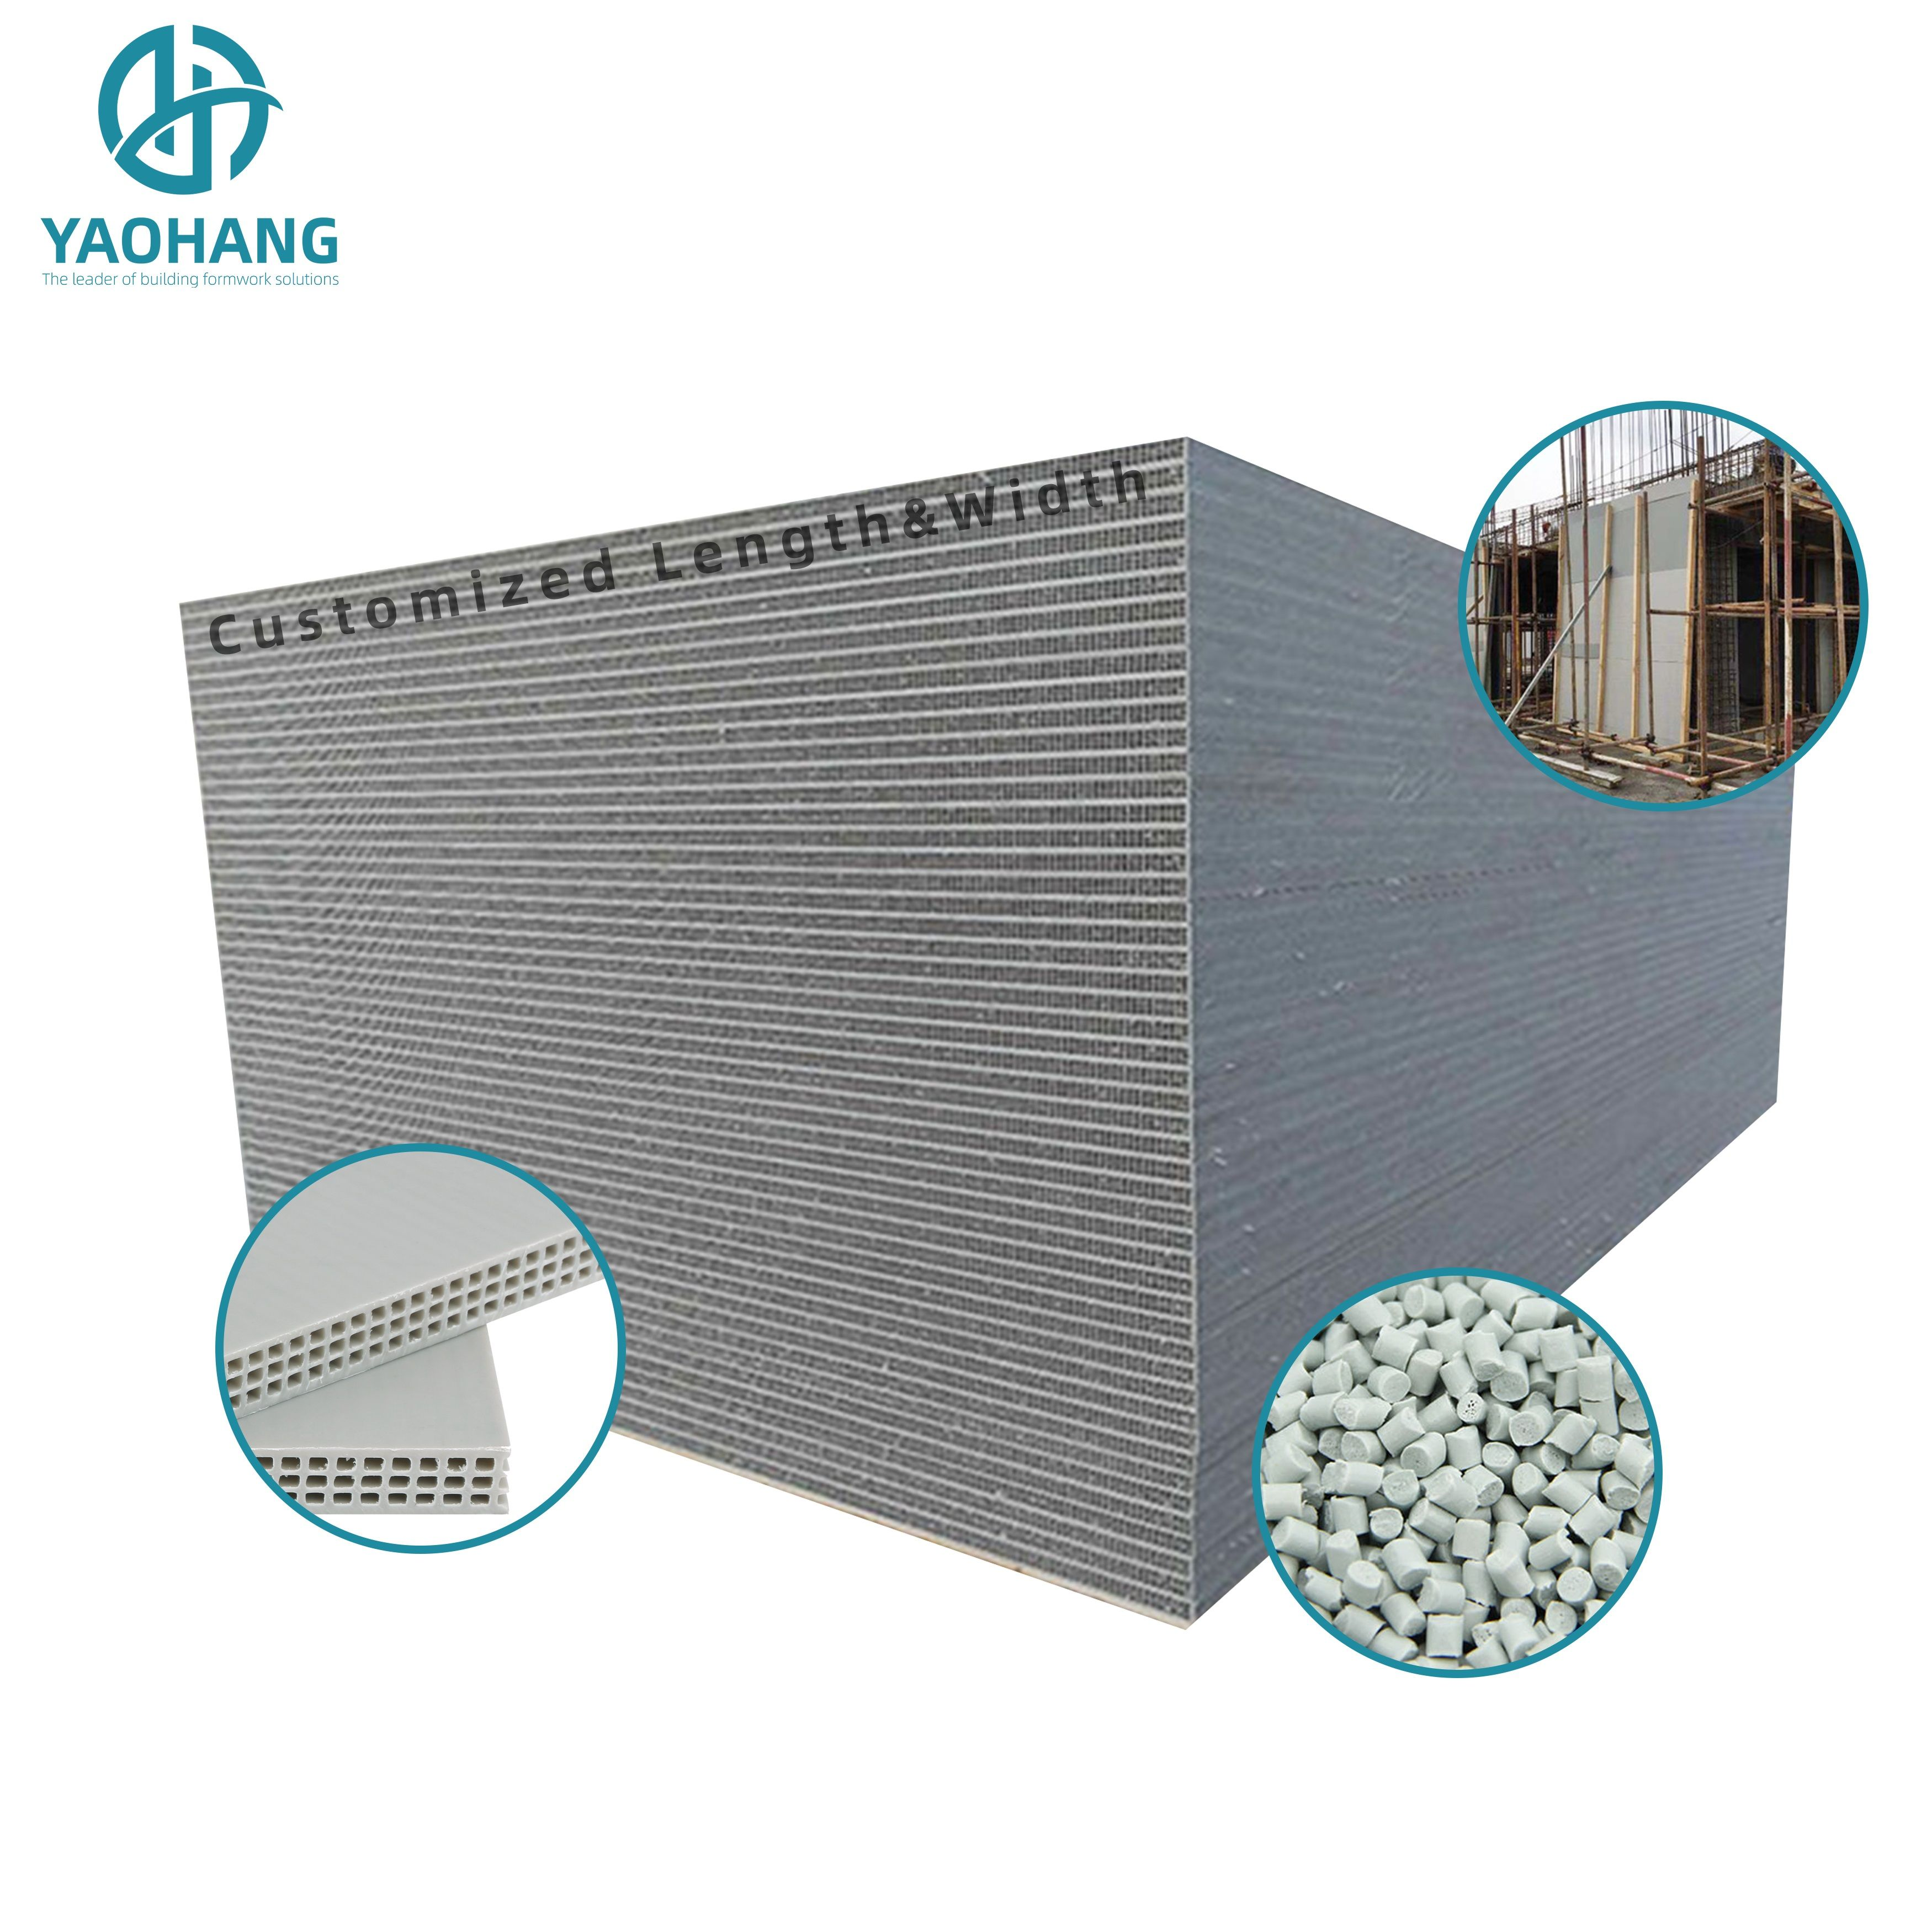 Customized High Quality Concrete Building Template Concrete Formwork Concrete Concrete Building